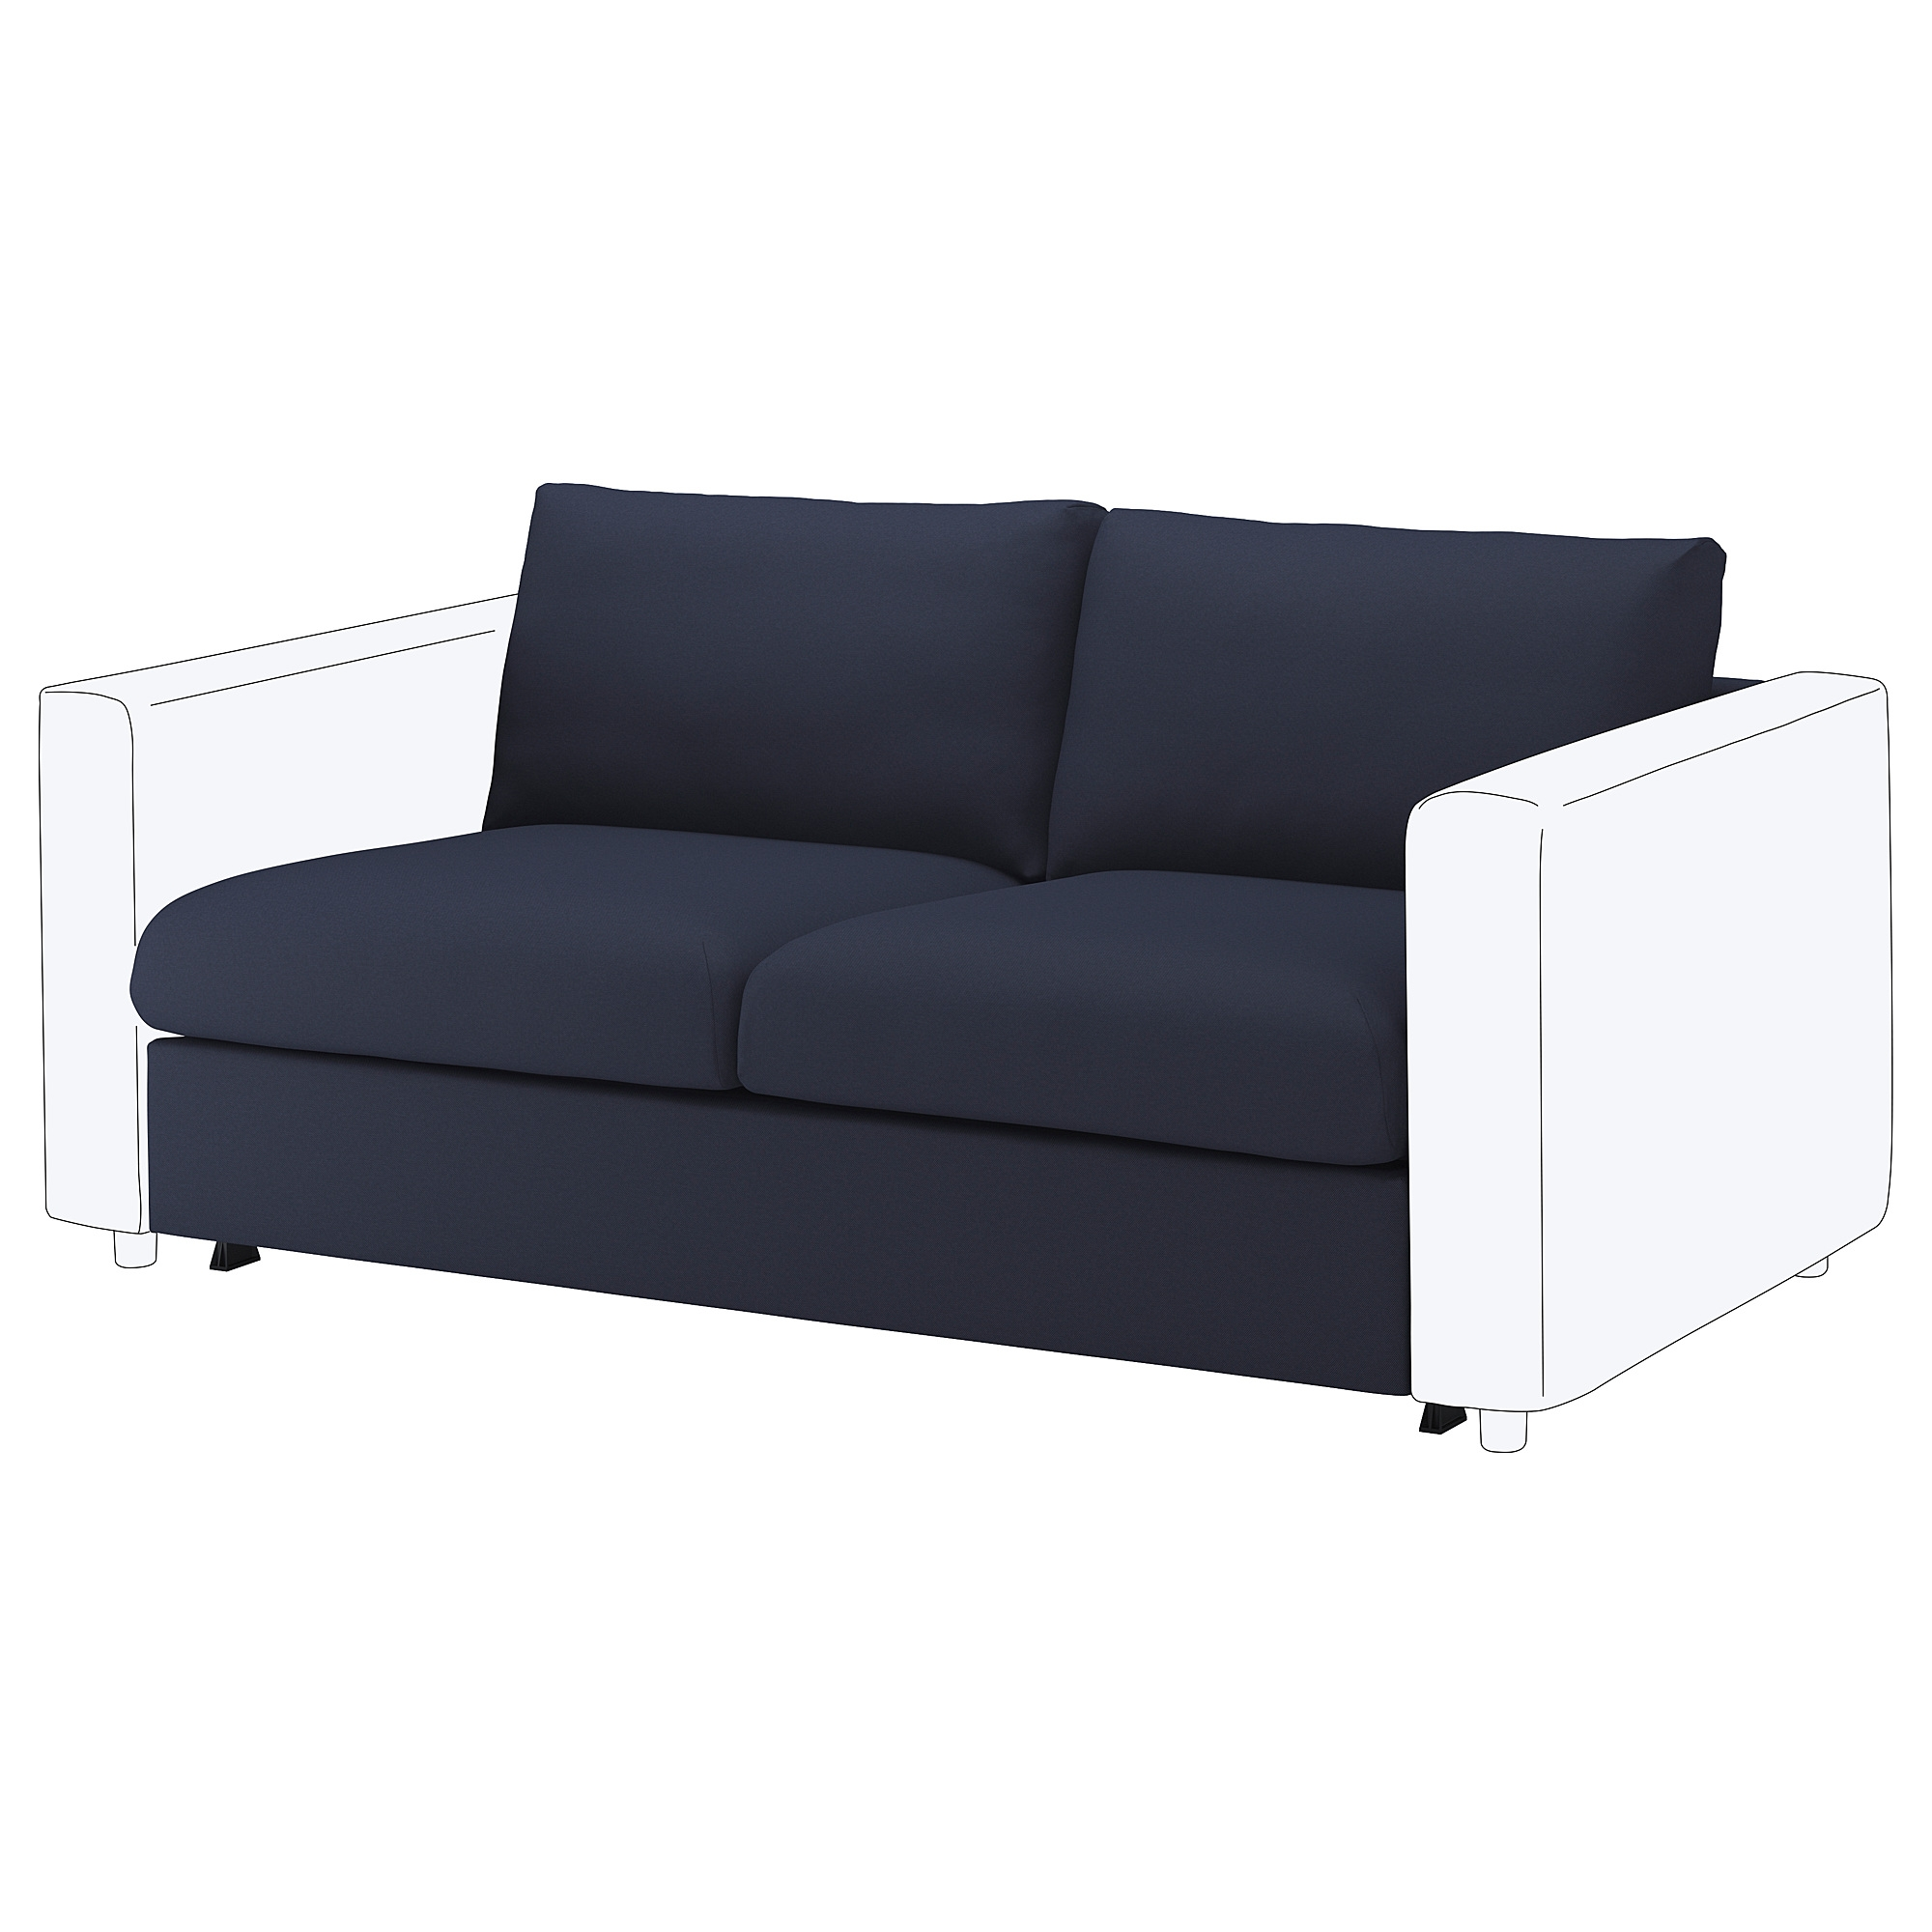 VIMLE 2-seat sofa-bed section